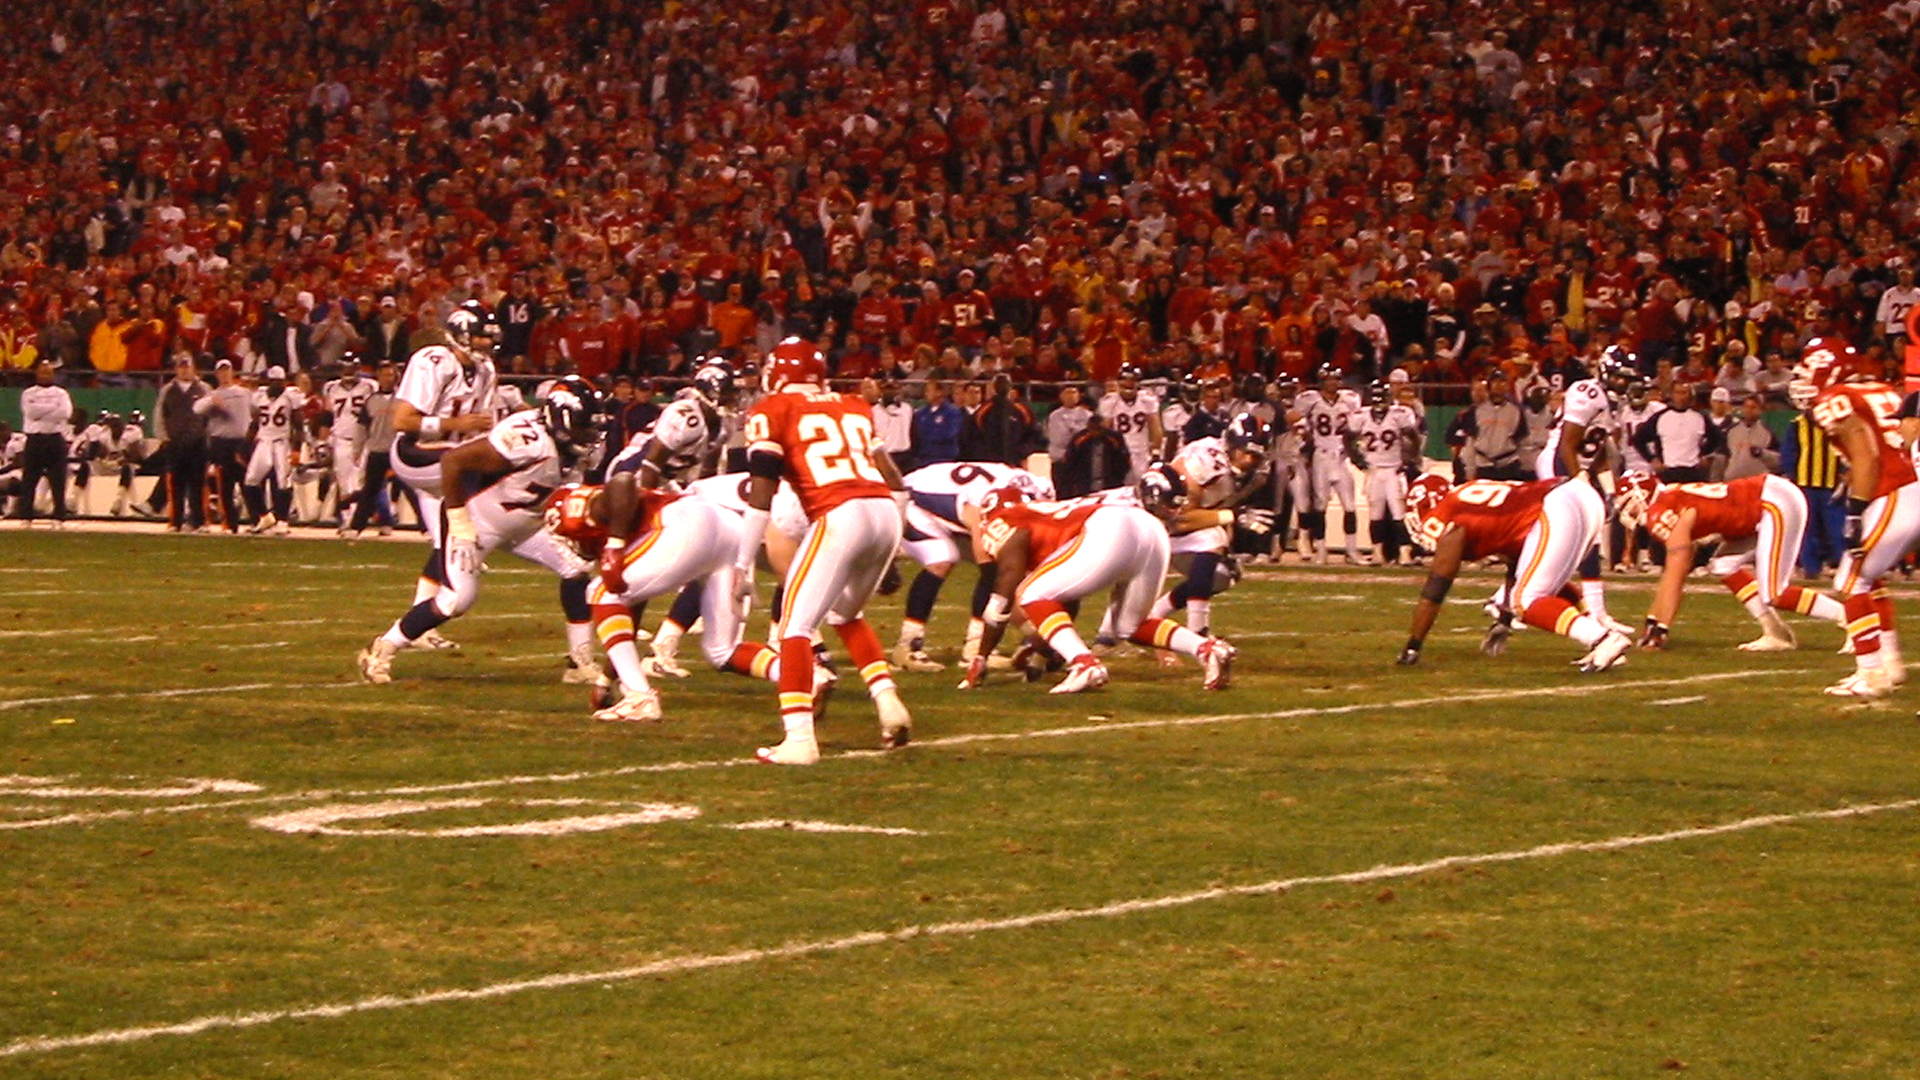 Sideline shooting for NFL Films, November 2006